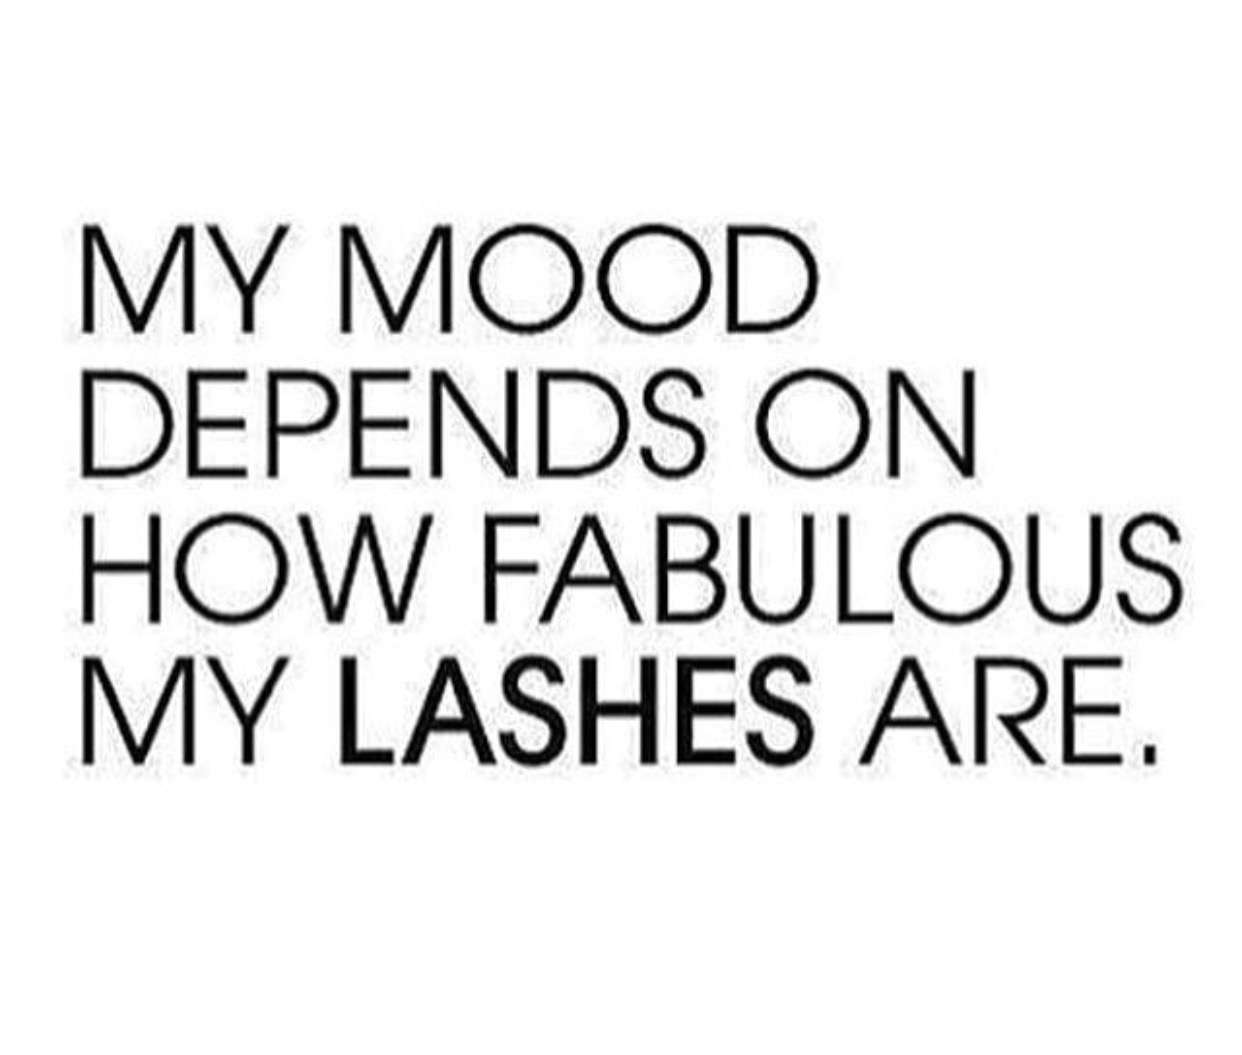 Preparing your lashes for the changing seasons